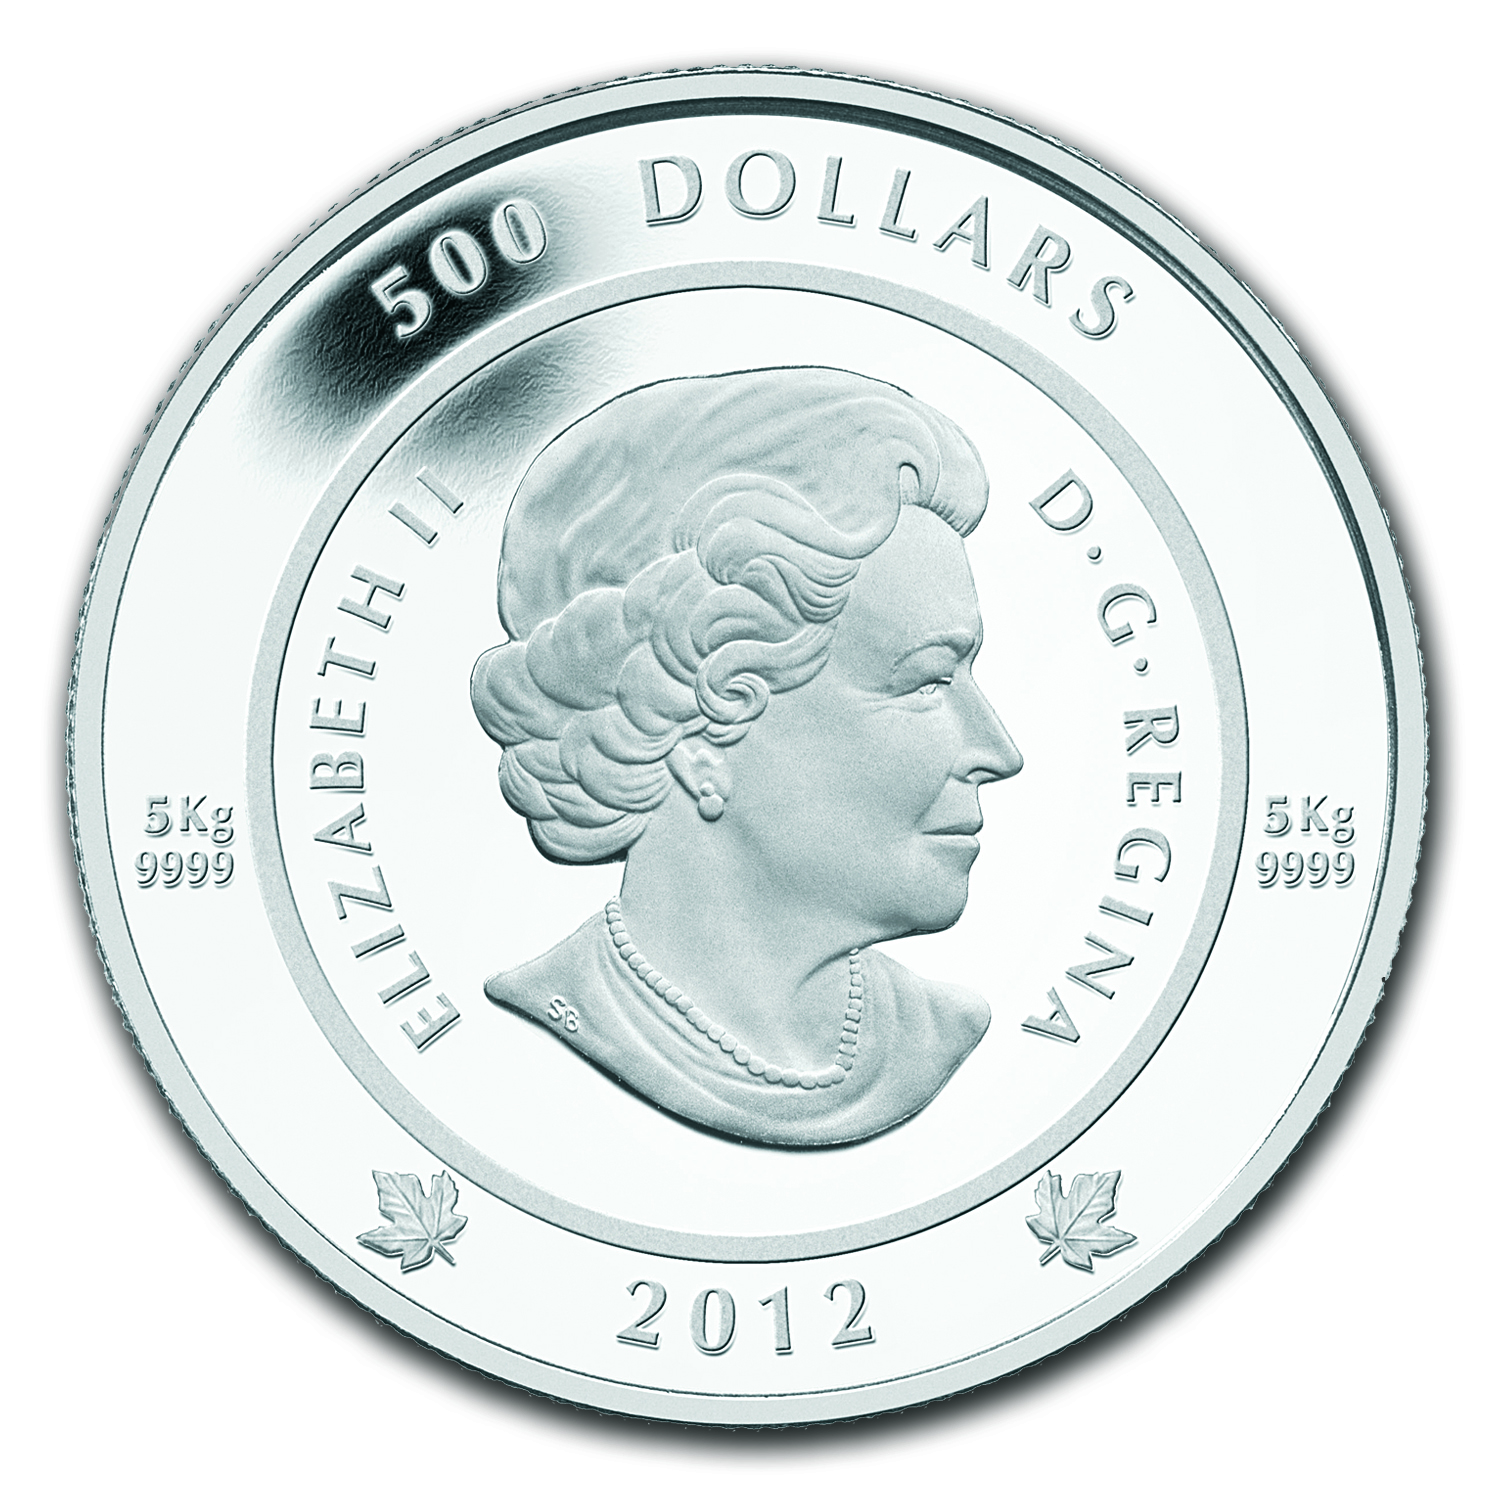 2012 5 Kilo Silver Canadian $500 - The Spirit of Haida Gwaii